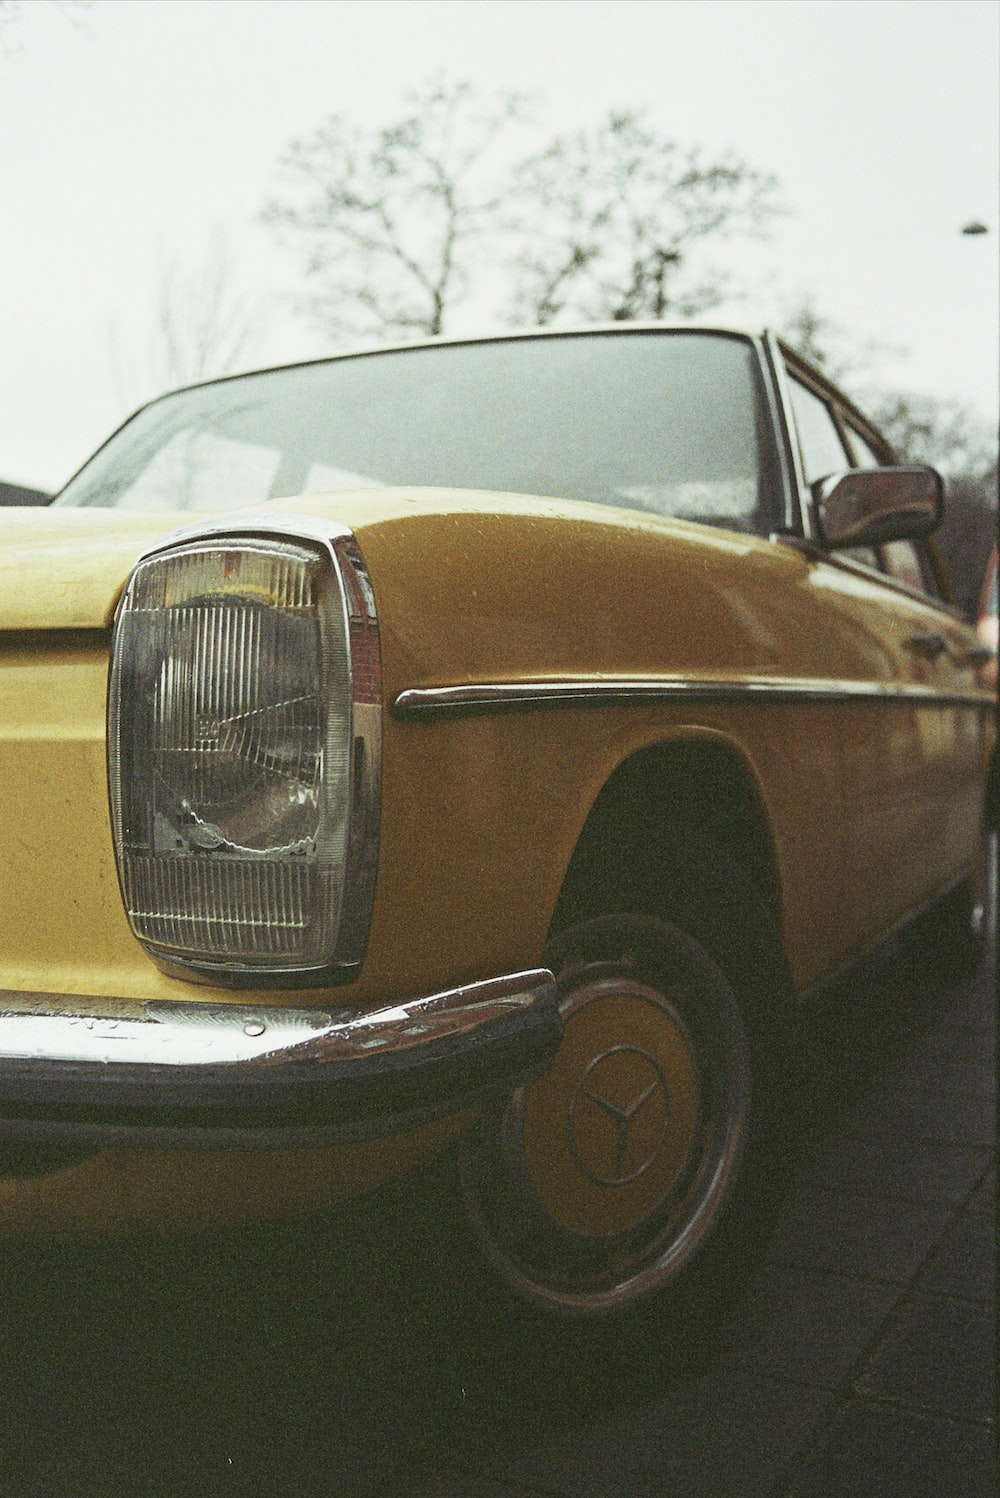 yellow and black car on gray pavement